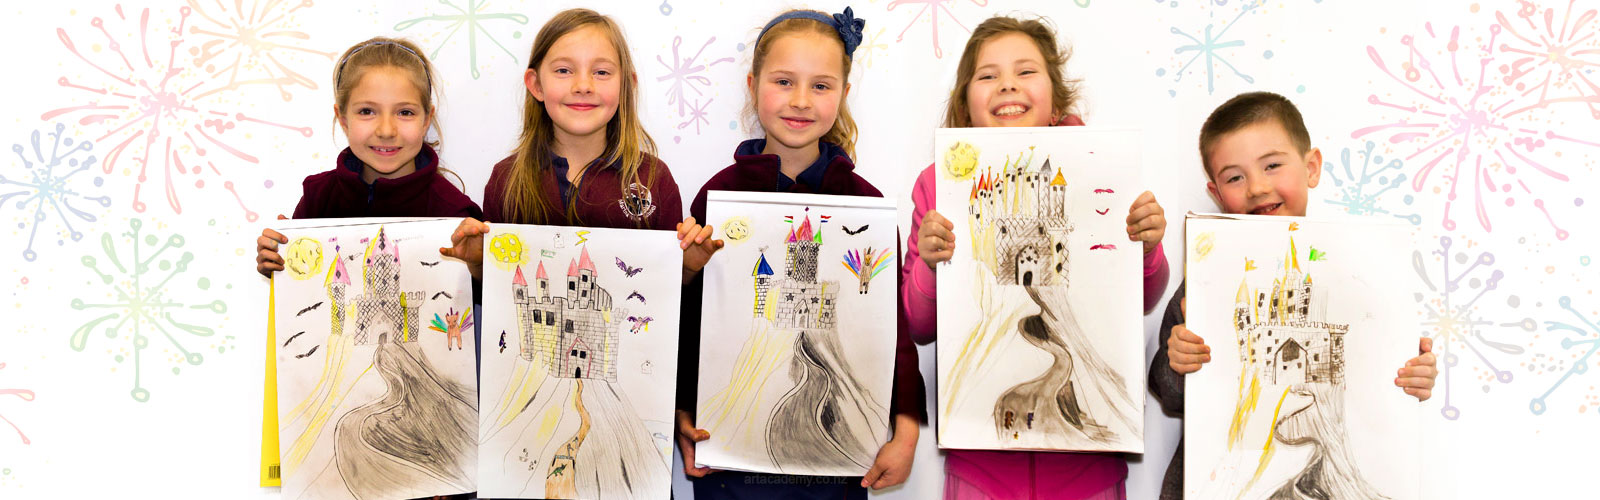 NZ-Art-Academy-Kids-Art-Clasess-Castle